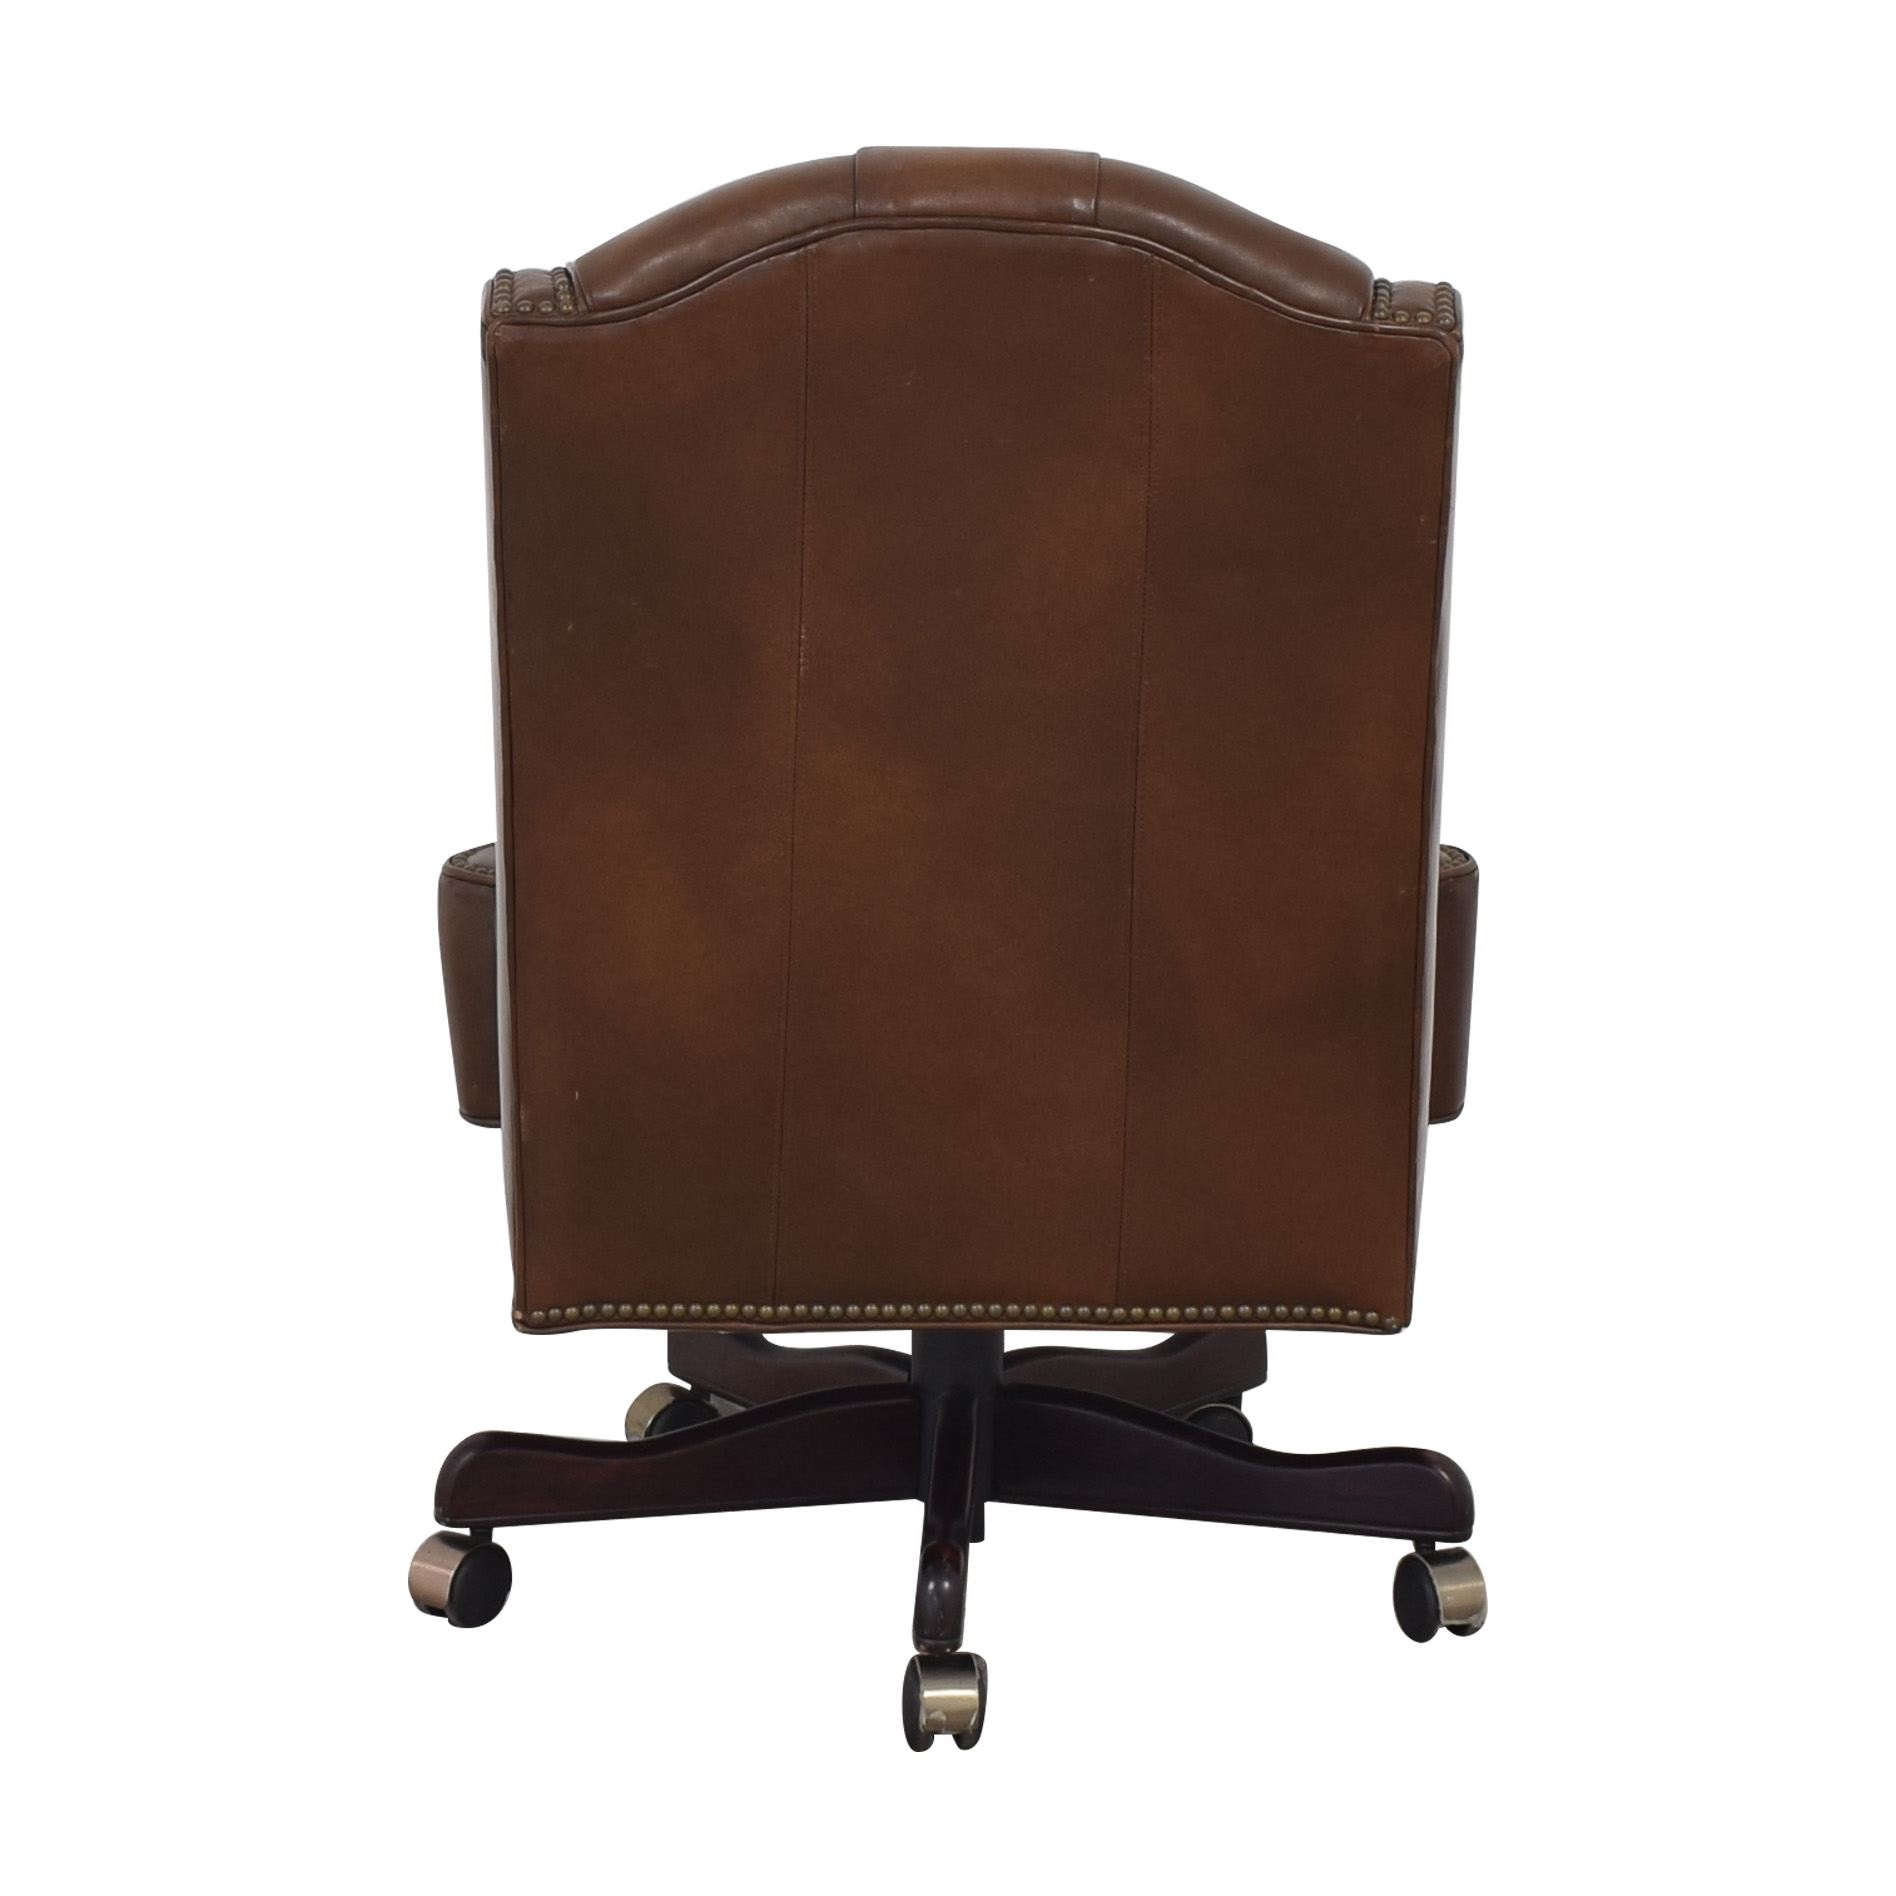 Our House Designs Our House Designs Swivel Chair